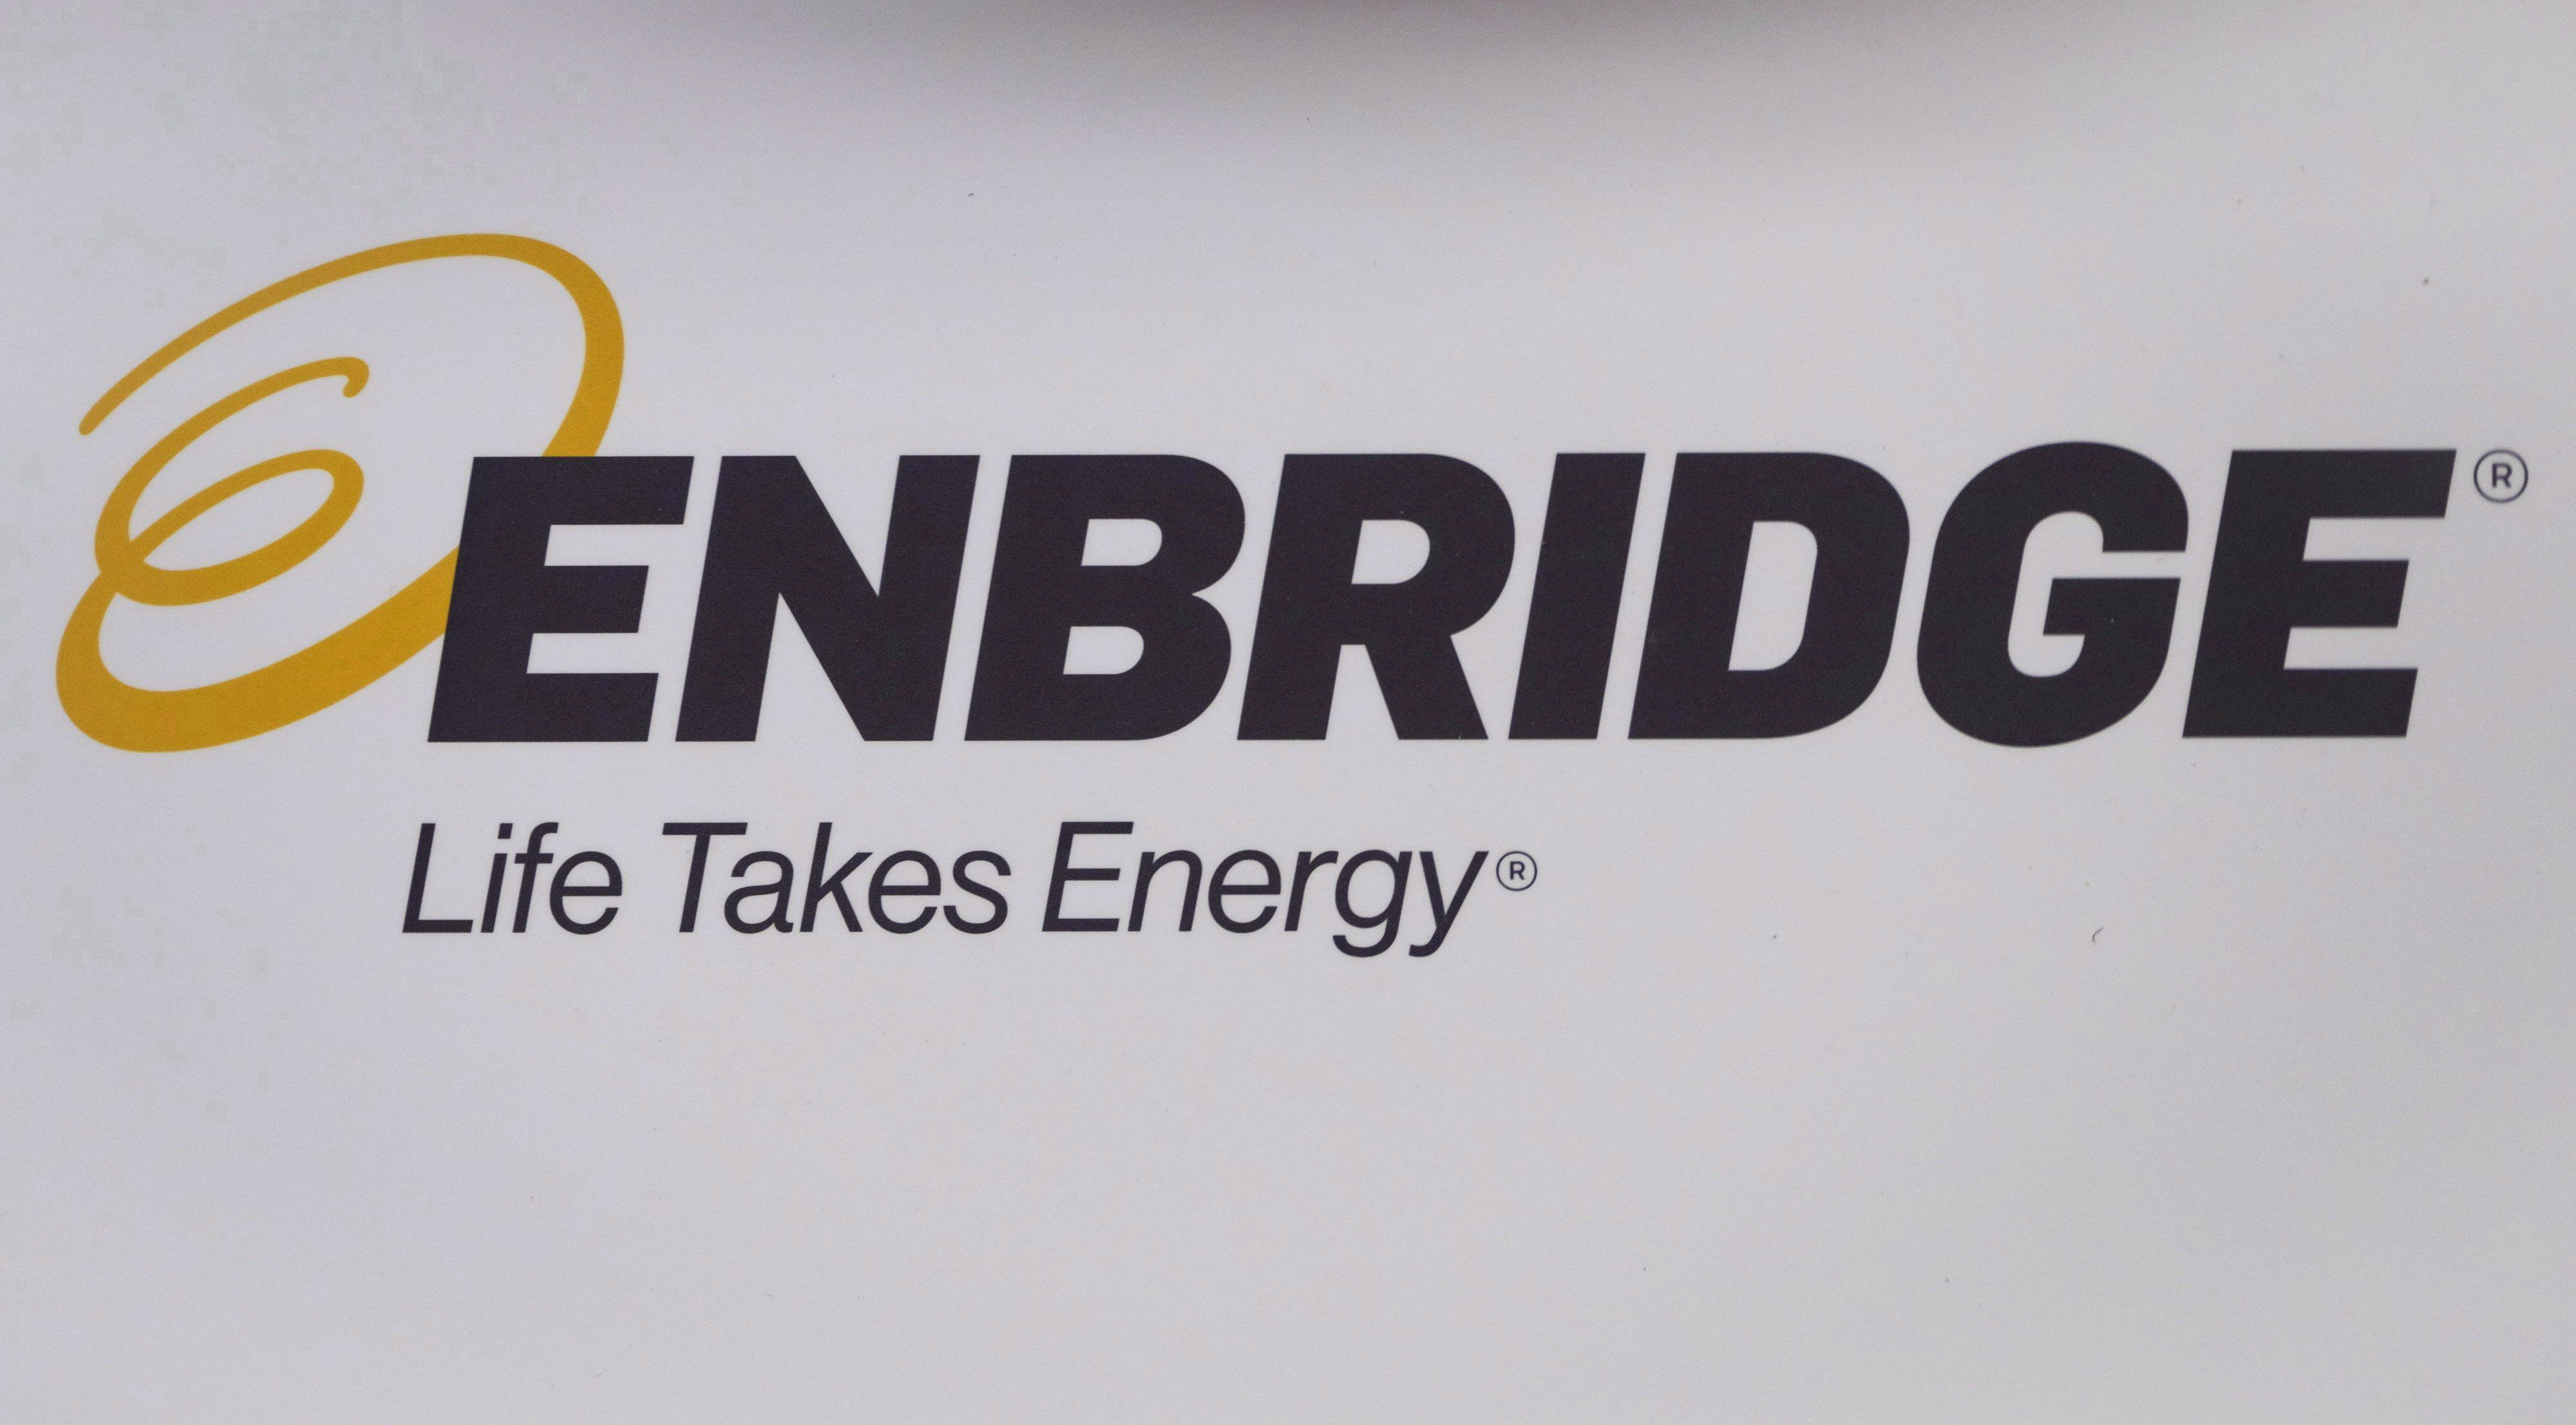 Enbridge says two injured after natural gas pipeline ruptures in